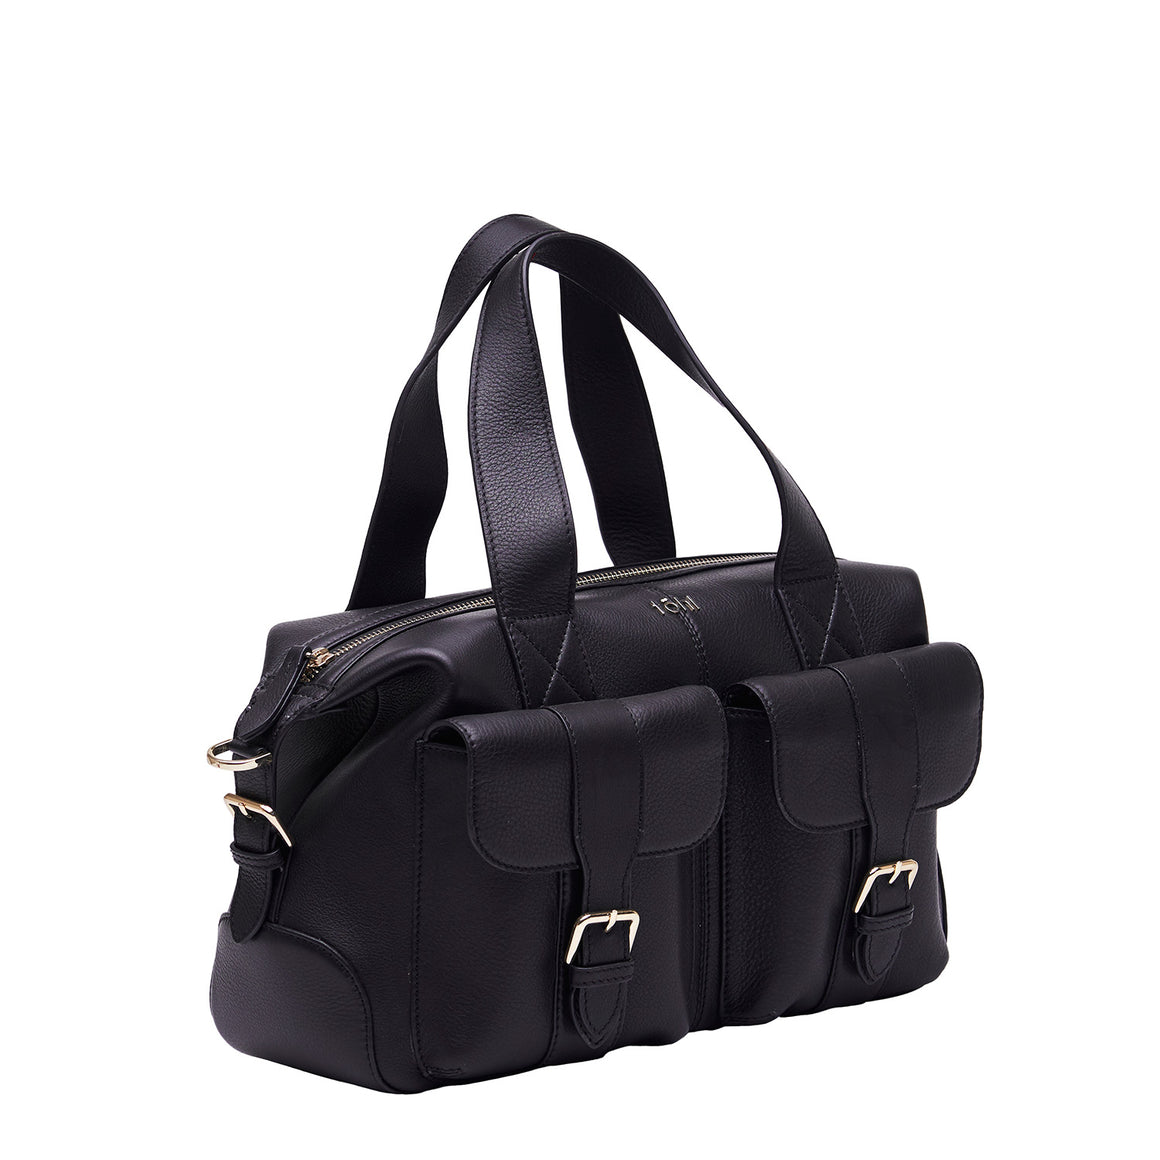 HH 0018 - TOHL PEPYS WOMEN'S HAND BAG - CHARCOAL BLACK